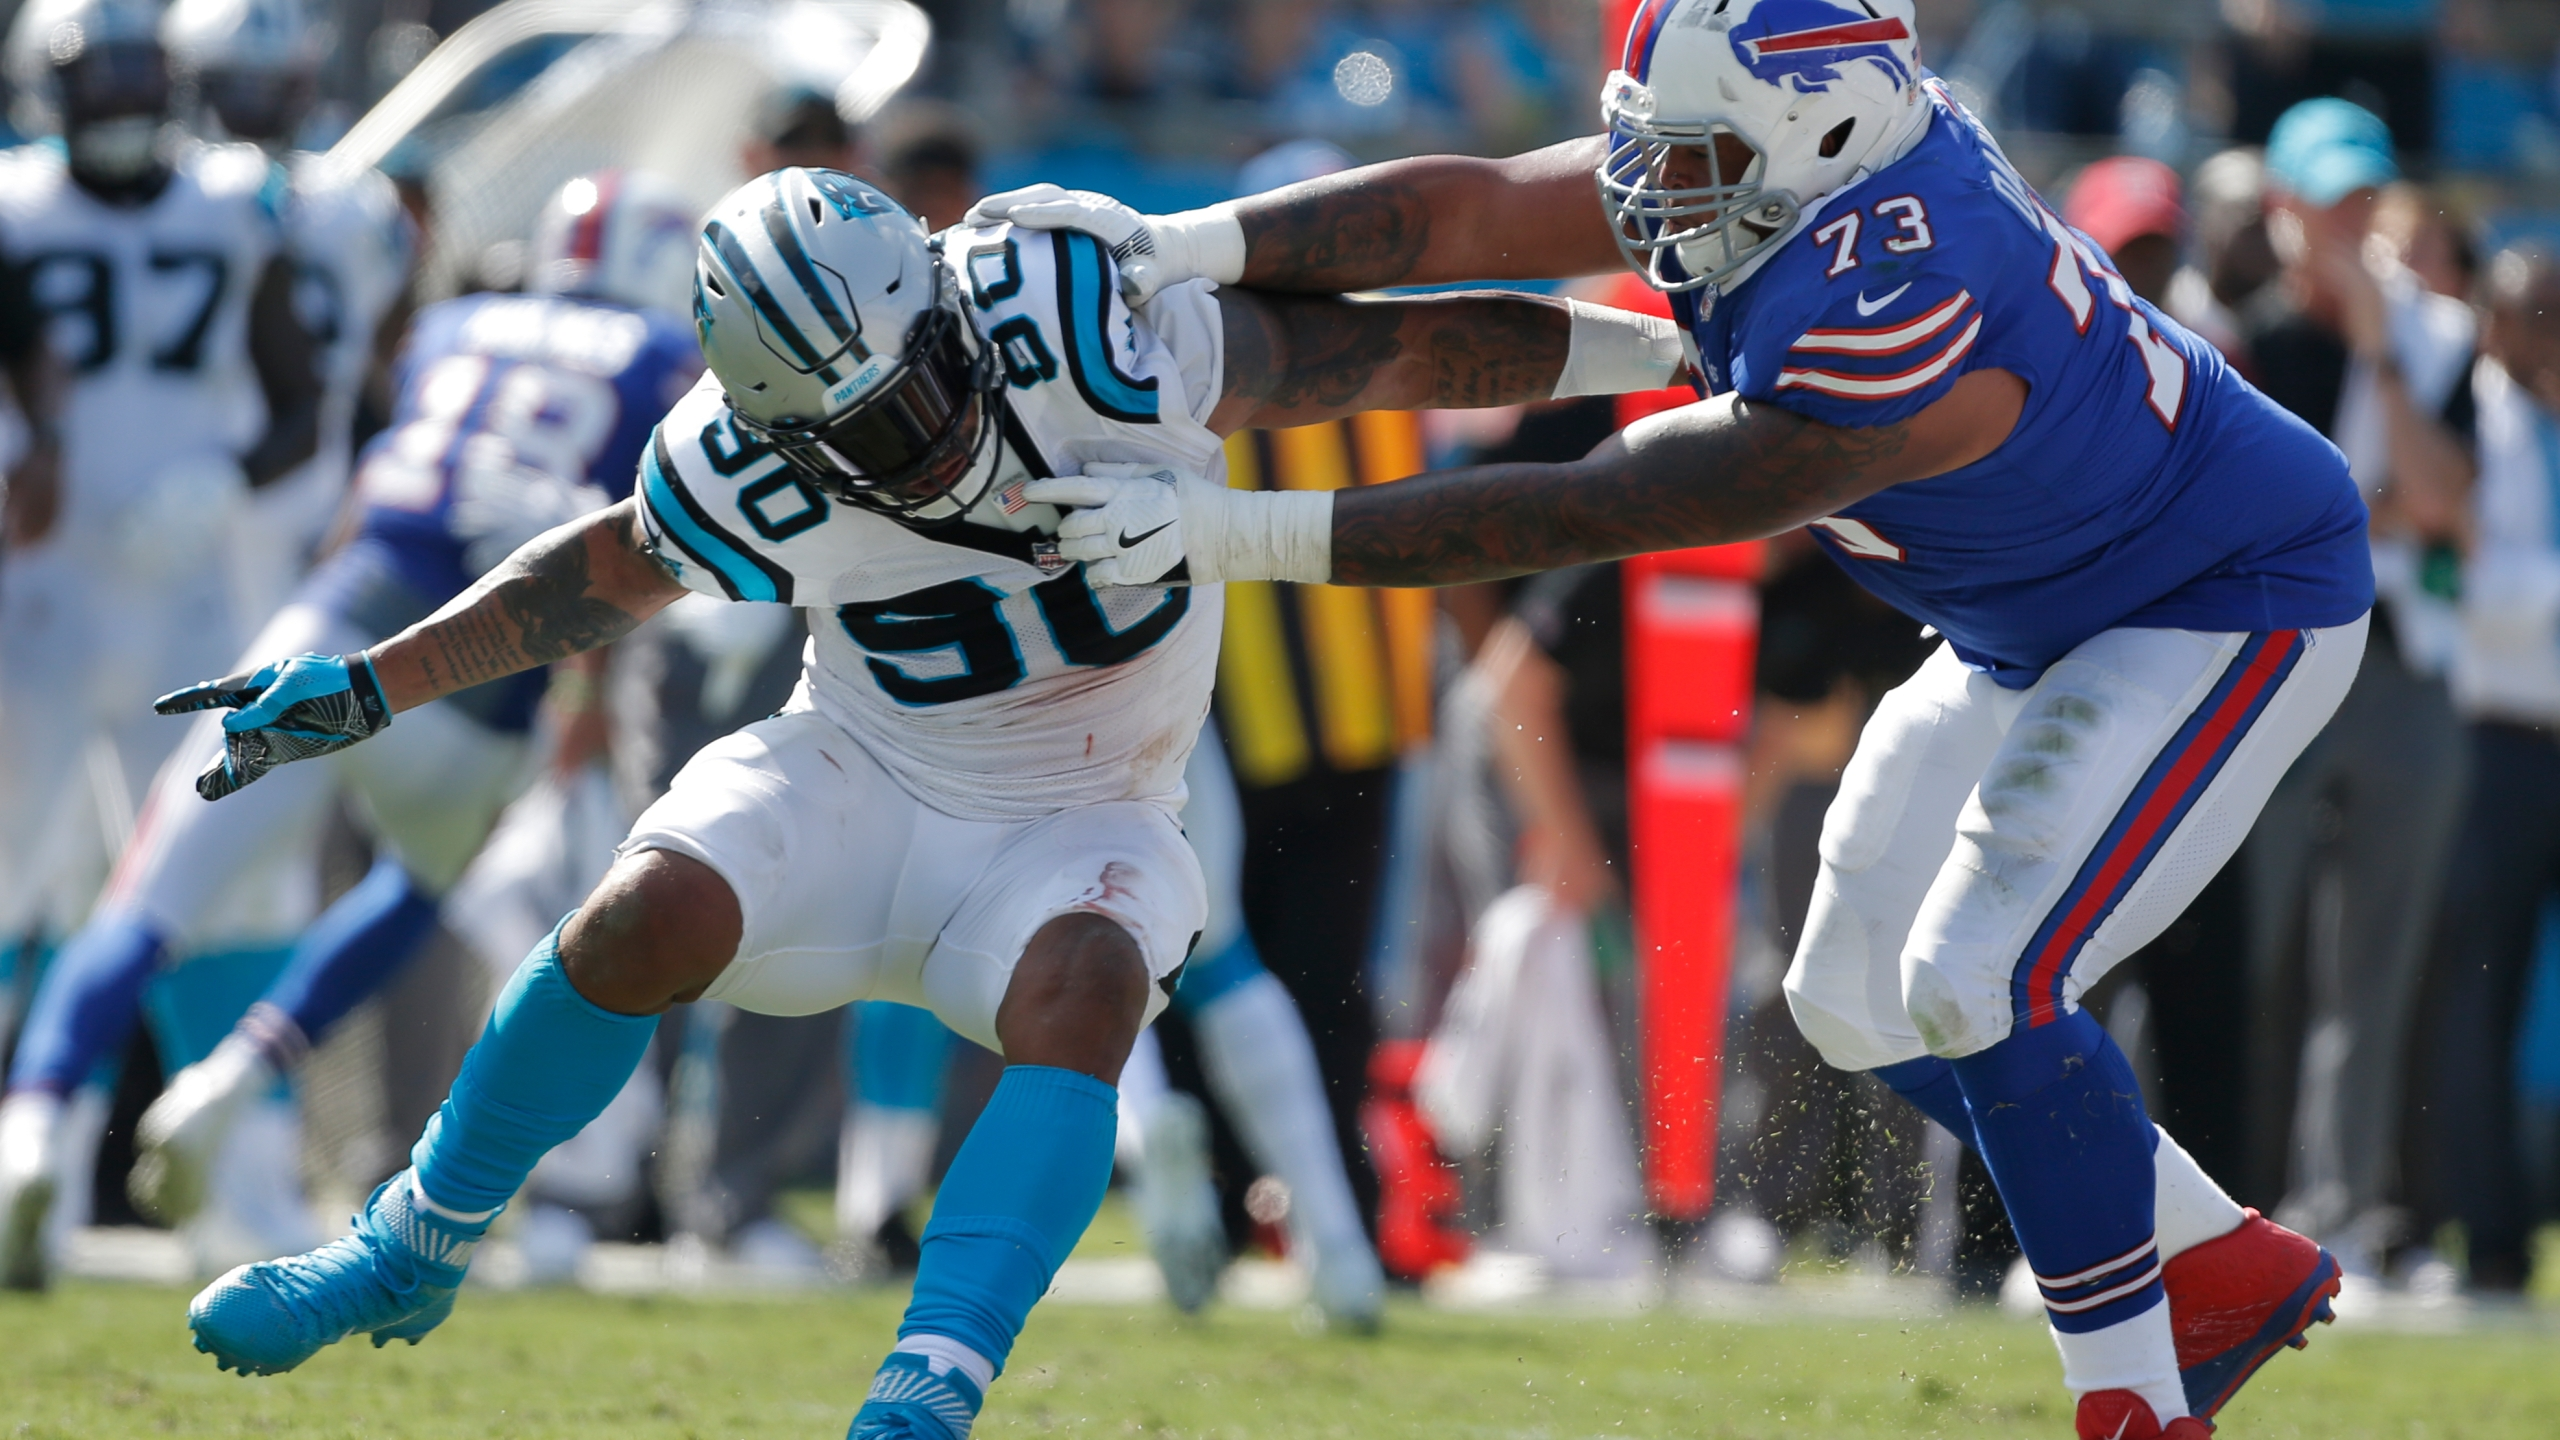 Bills Panthers Football_1532285635458